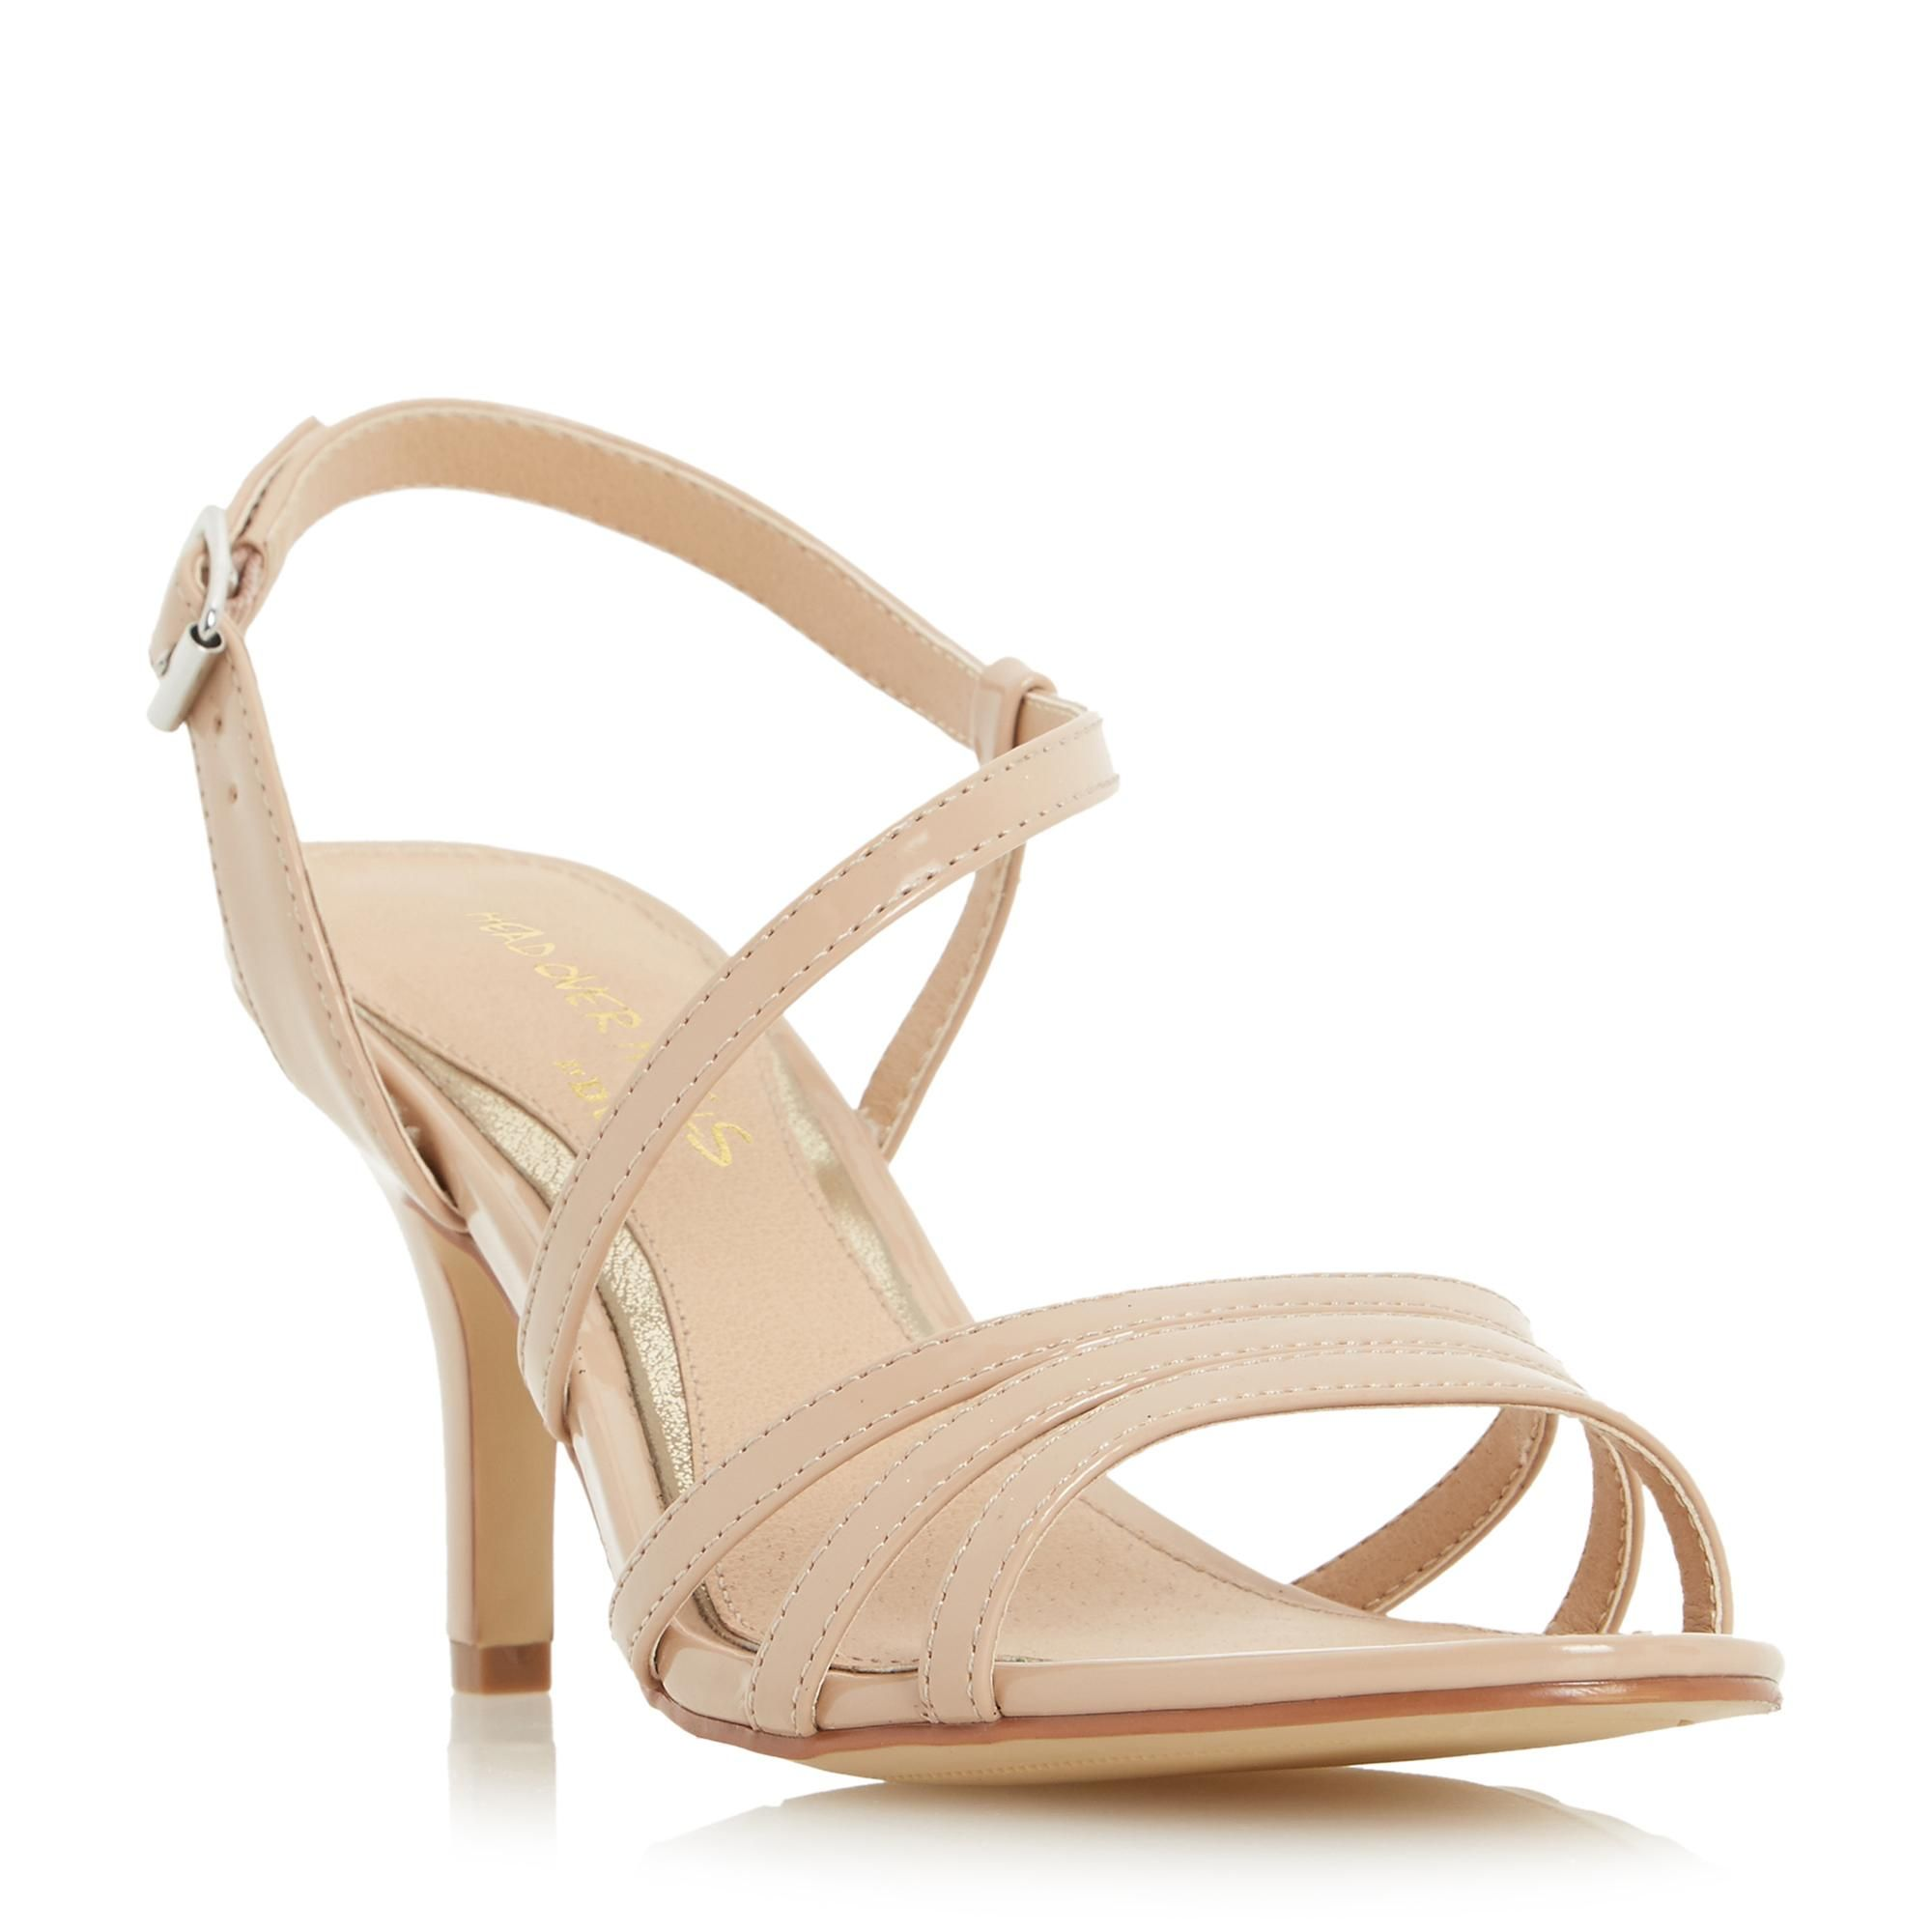 MATTORI - Asymmetric Mid Heel Sandal | Shoes online, Dune and Sandals